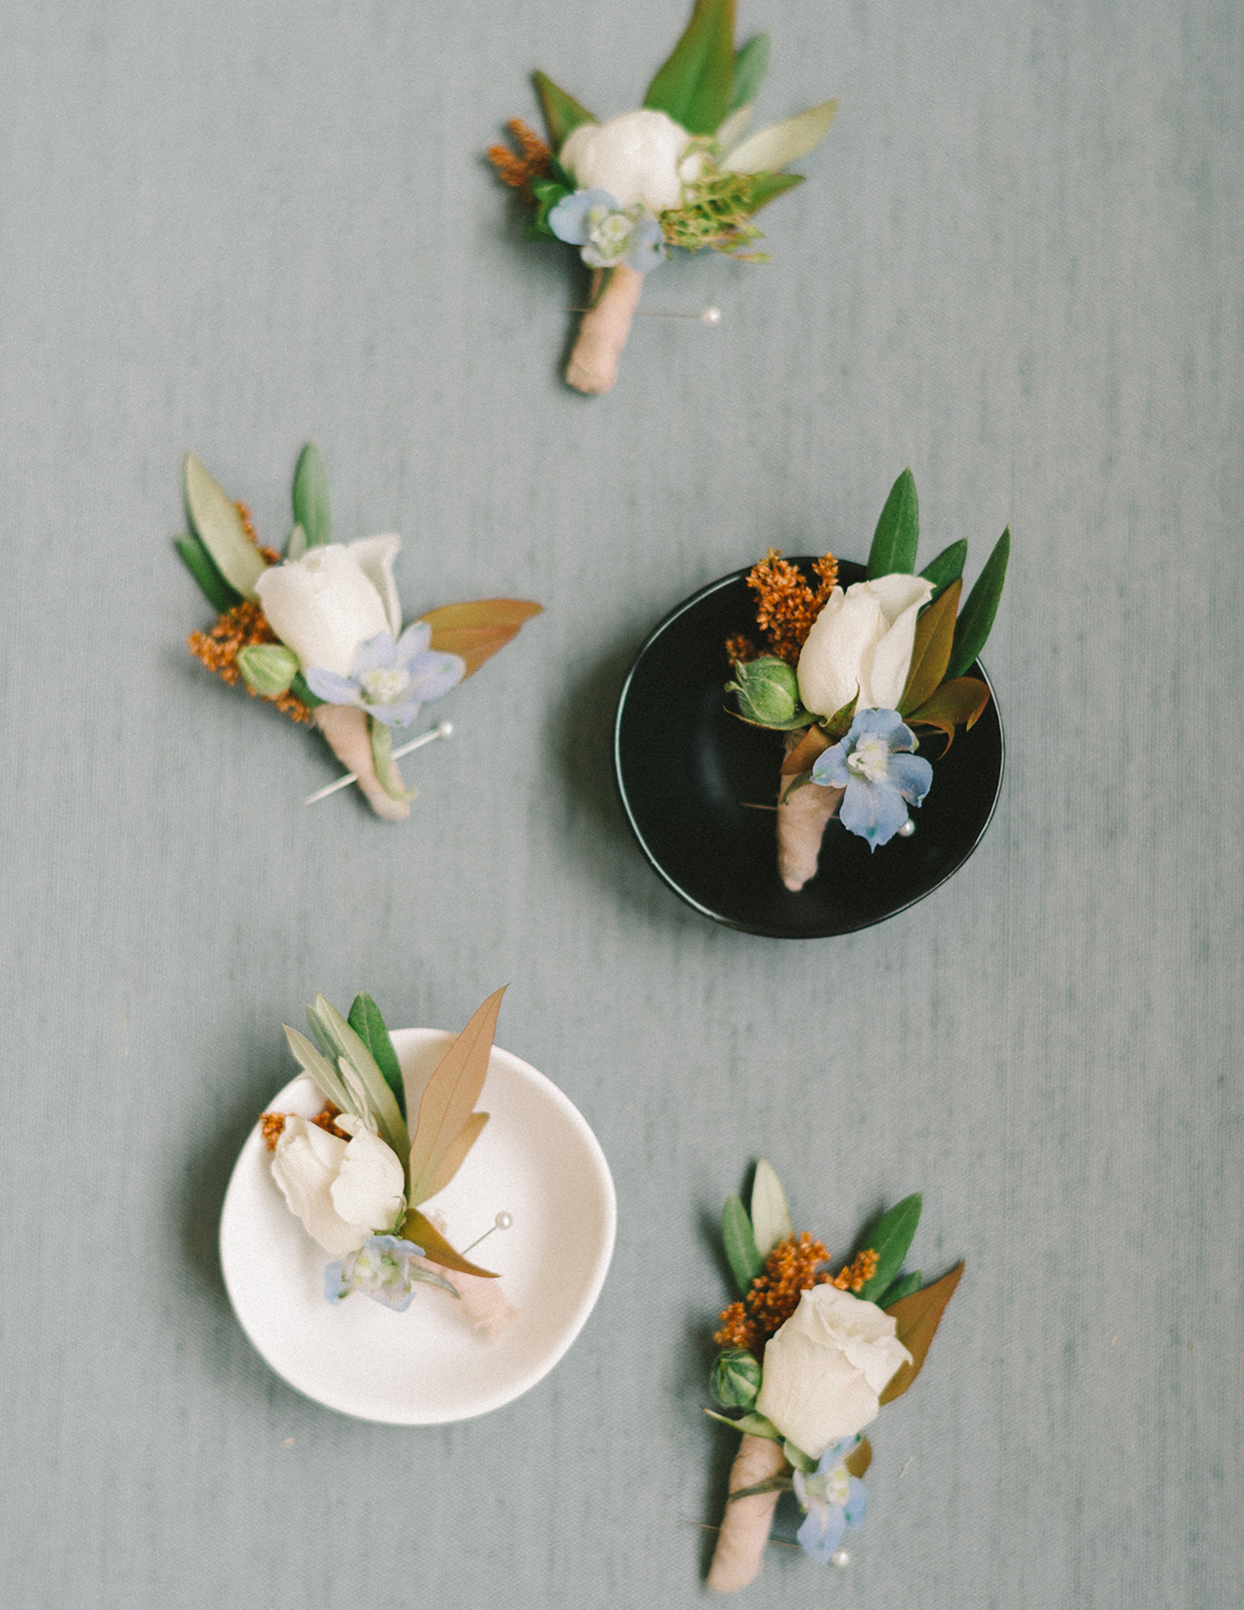 ericka meechaeyl wedding boutonnieres on decorative dishes